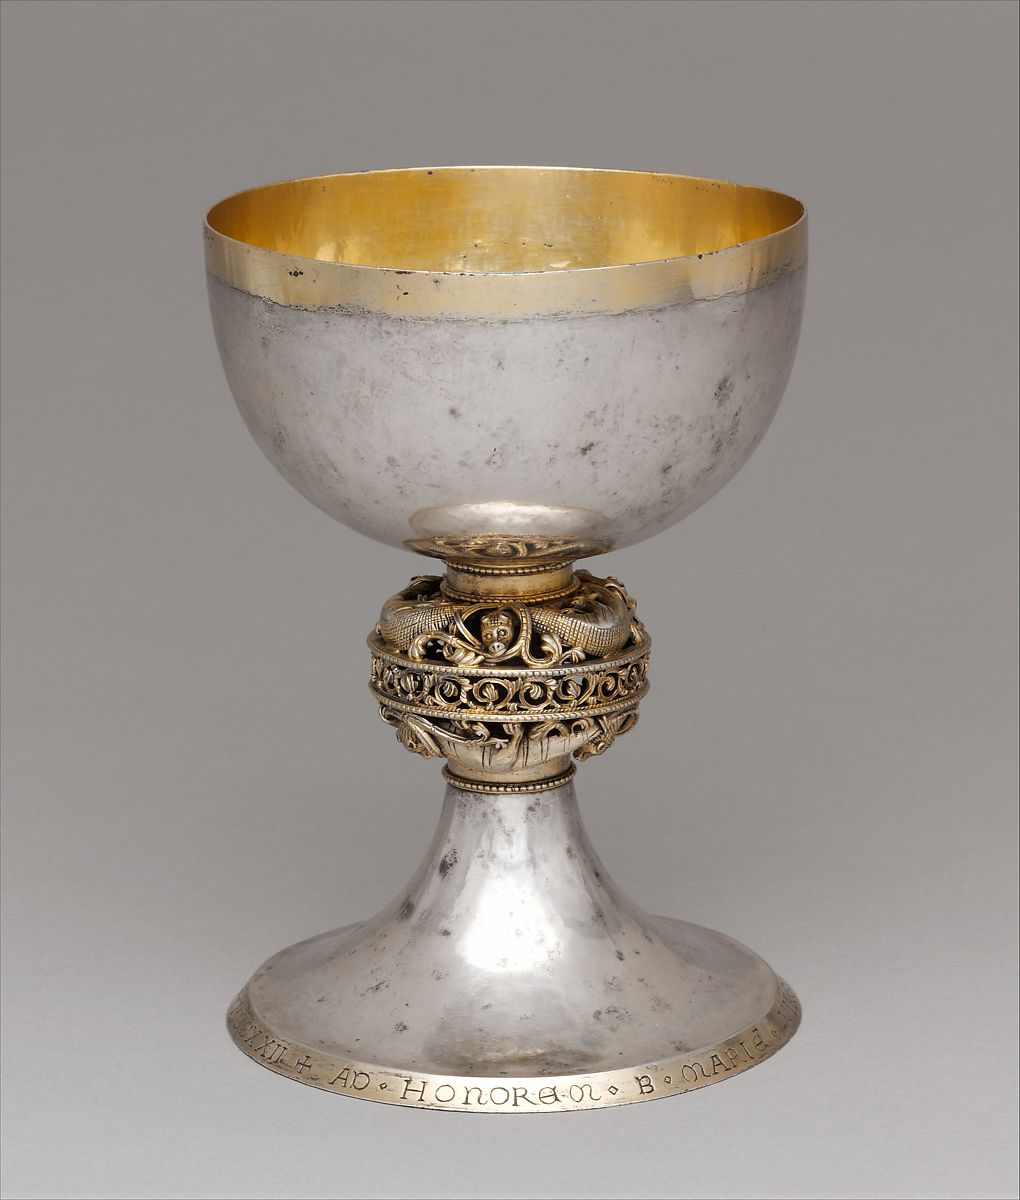 ornate chalice by Brother Bertinus in 1222